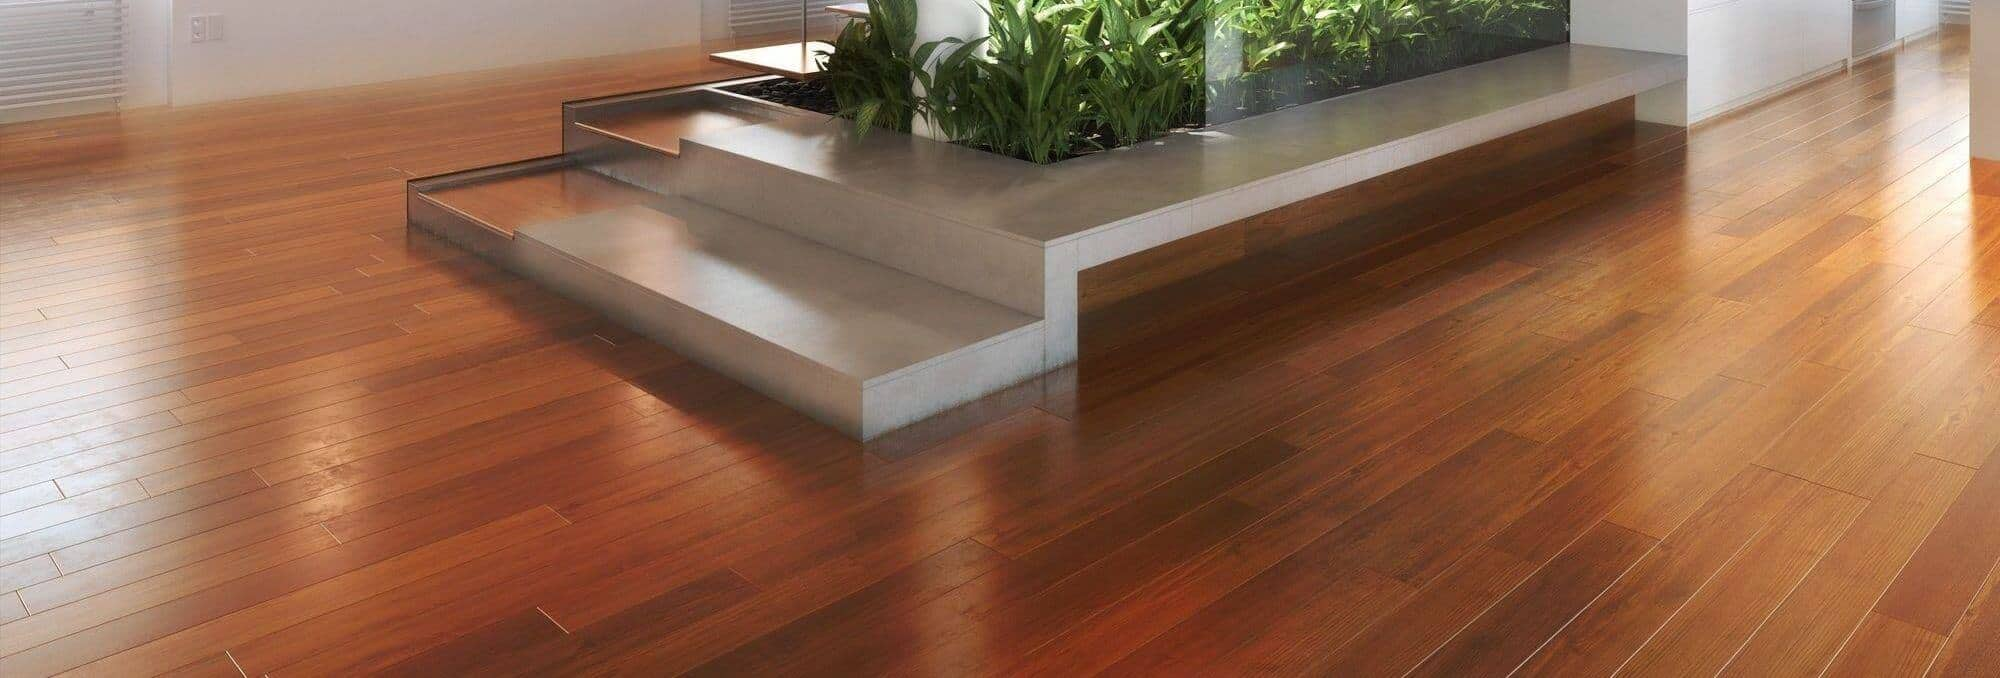 TIMBER-FLOOR-SANDING-AND-POLISHING1